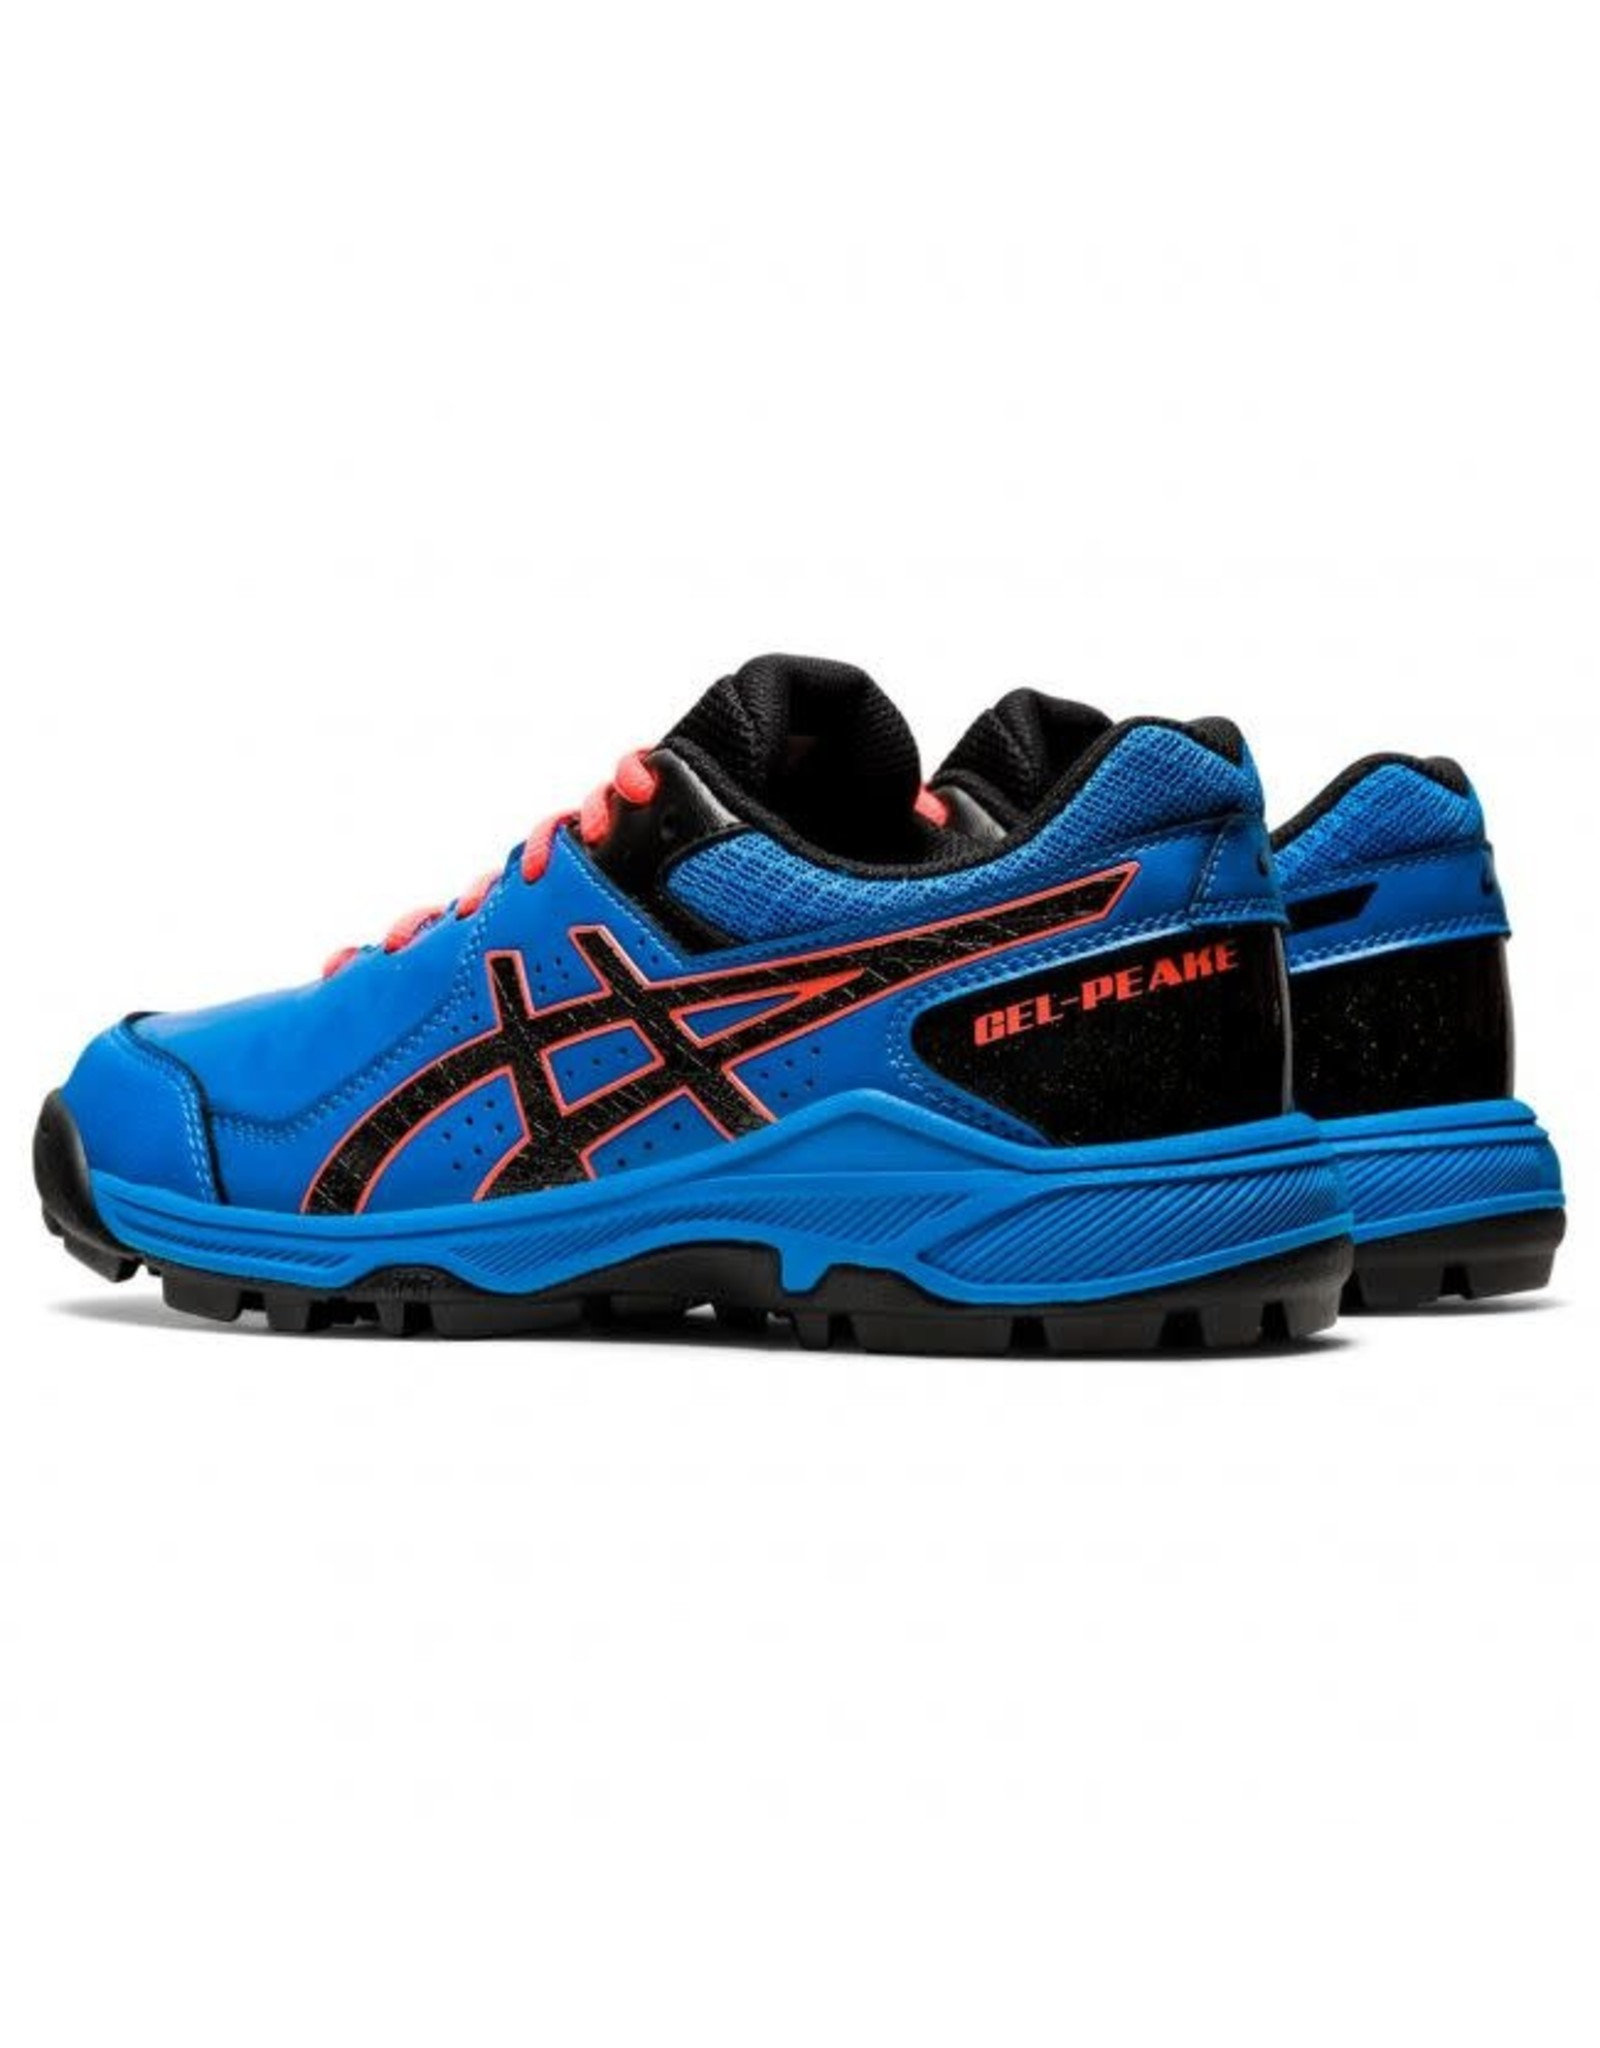 ASICS ASICS GEL-PEAKE GS KIDS 20-21 BLUE